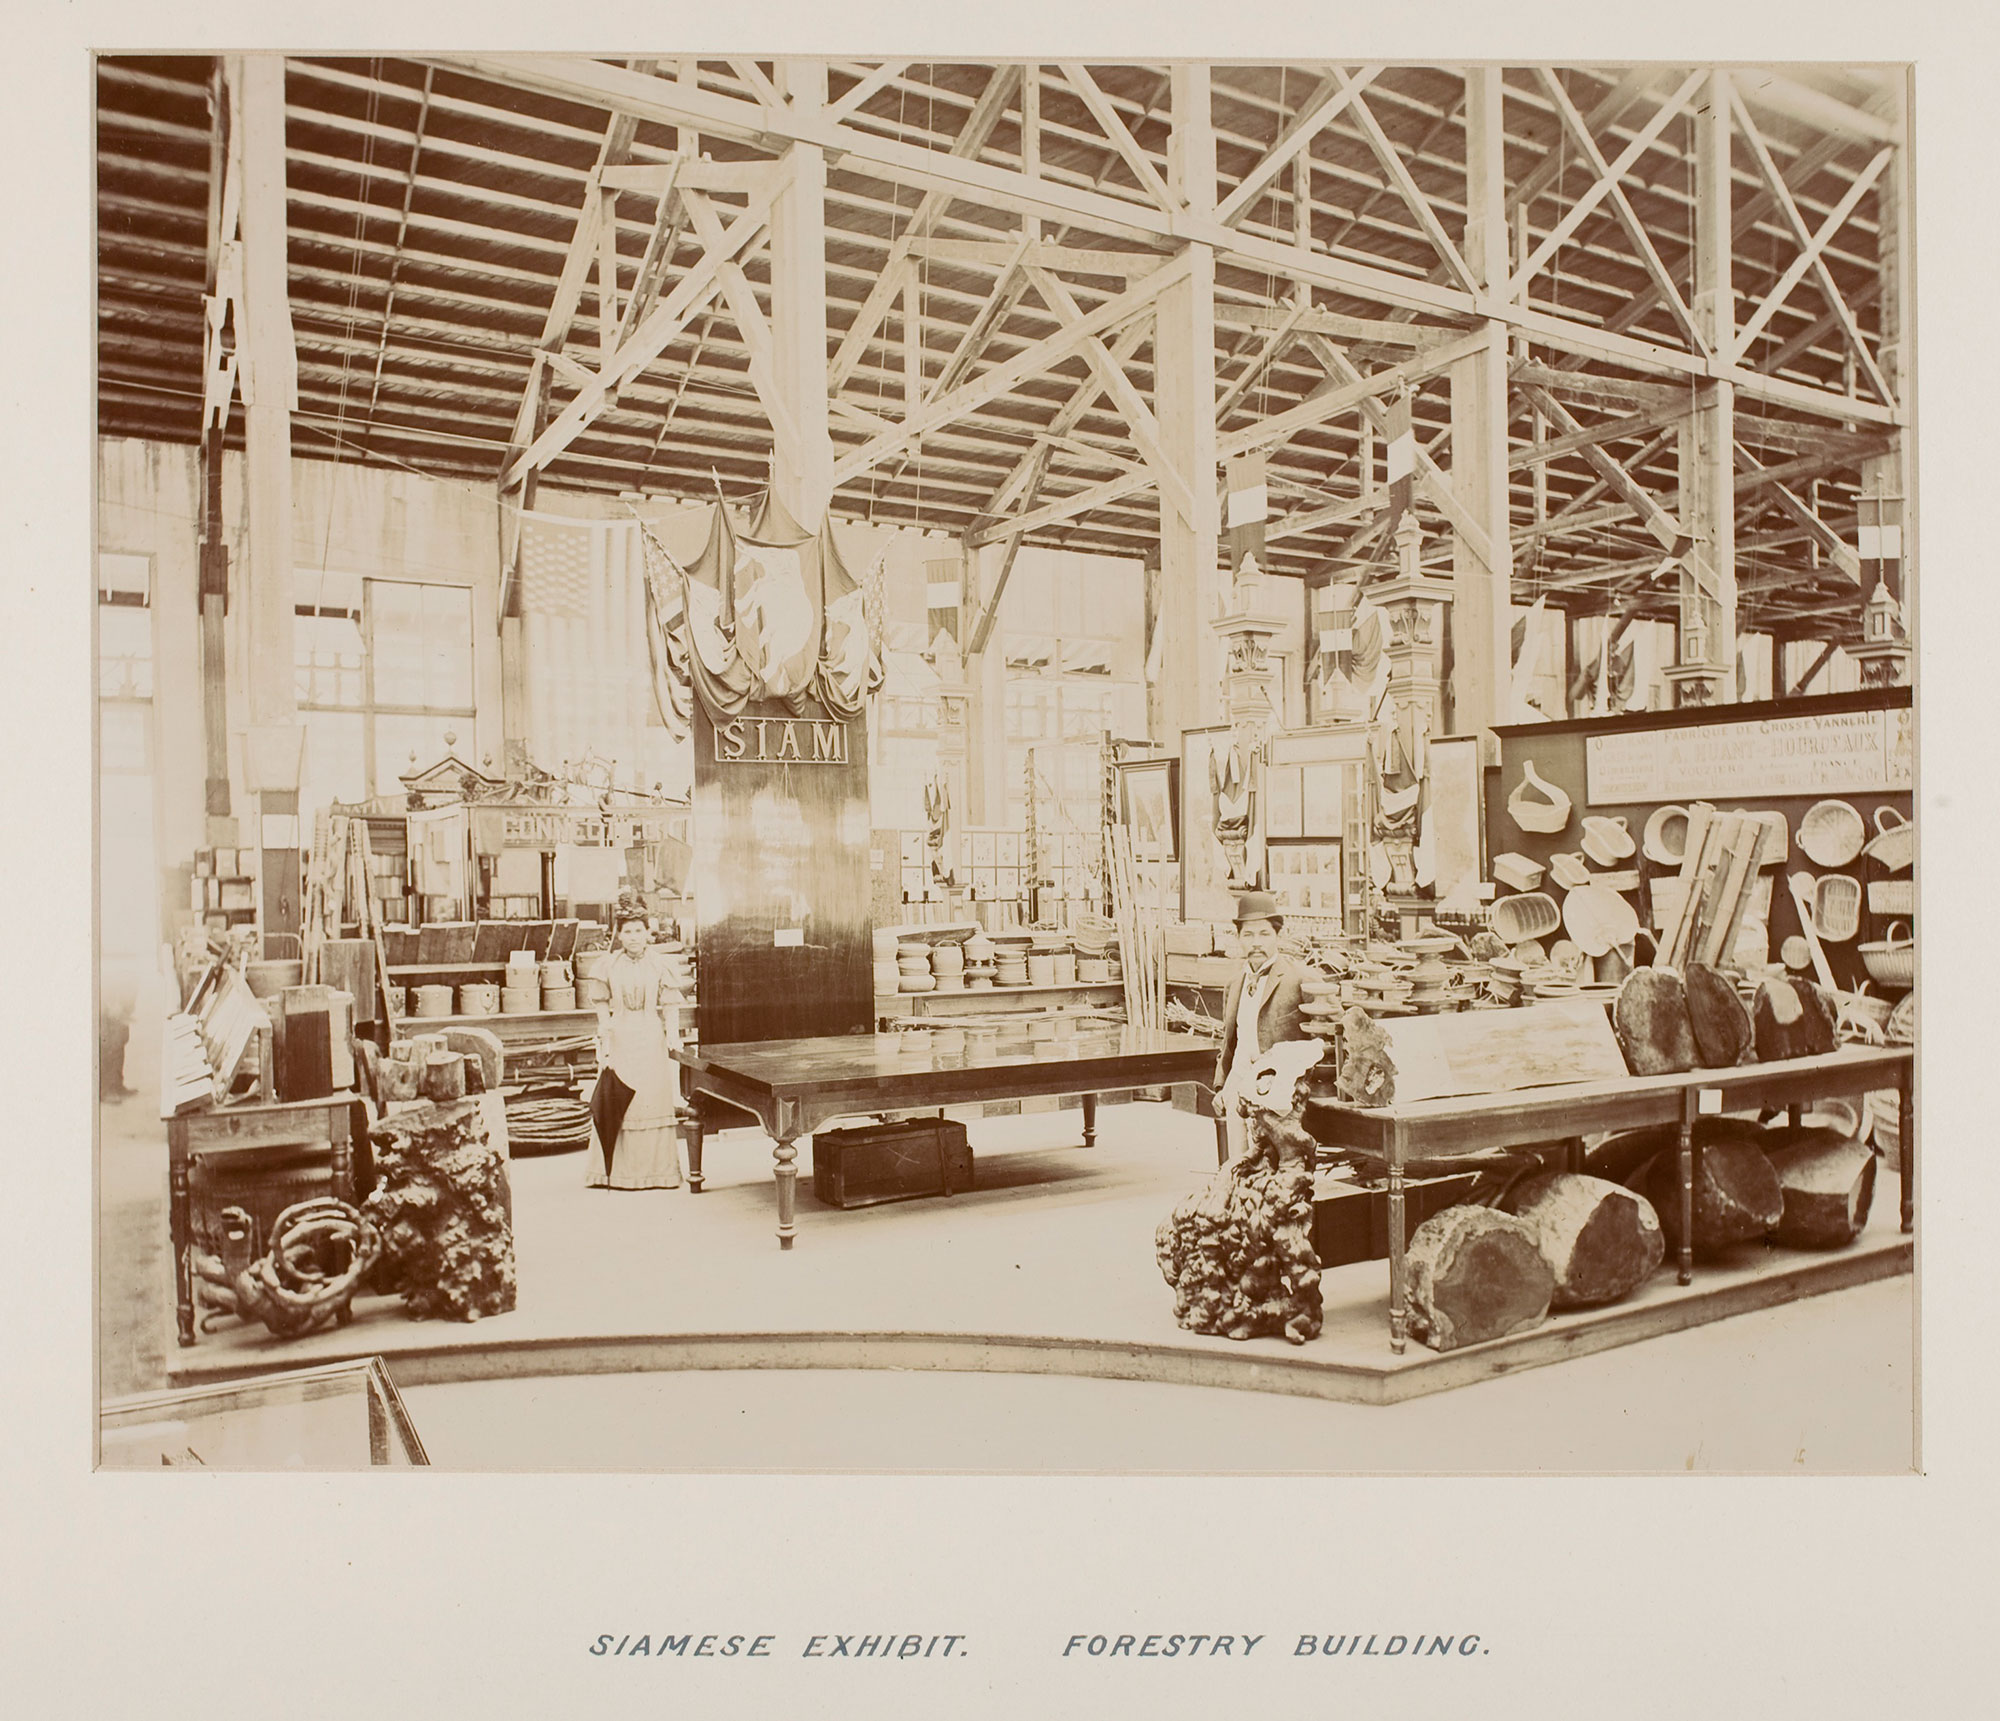 Forestry Building exhibit at the World's Columbian Exposition, 1893, Chicago, Illinois  นิทรรศการภายในอาคารจัดแสดง Forestry Building ในงาน World's Columbian Exposition พ.ศ. 2436 ณ เมืองชิคาโก รัฐอิลลินอยส์